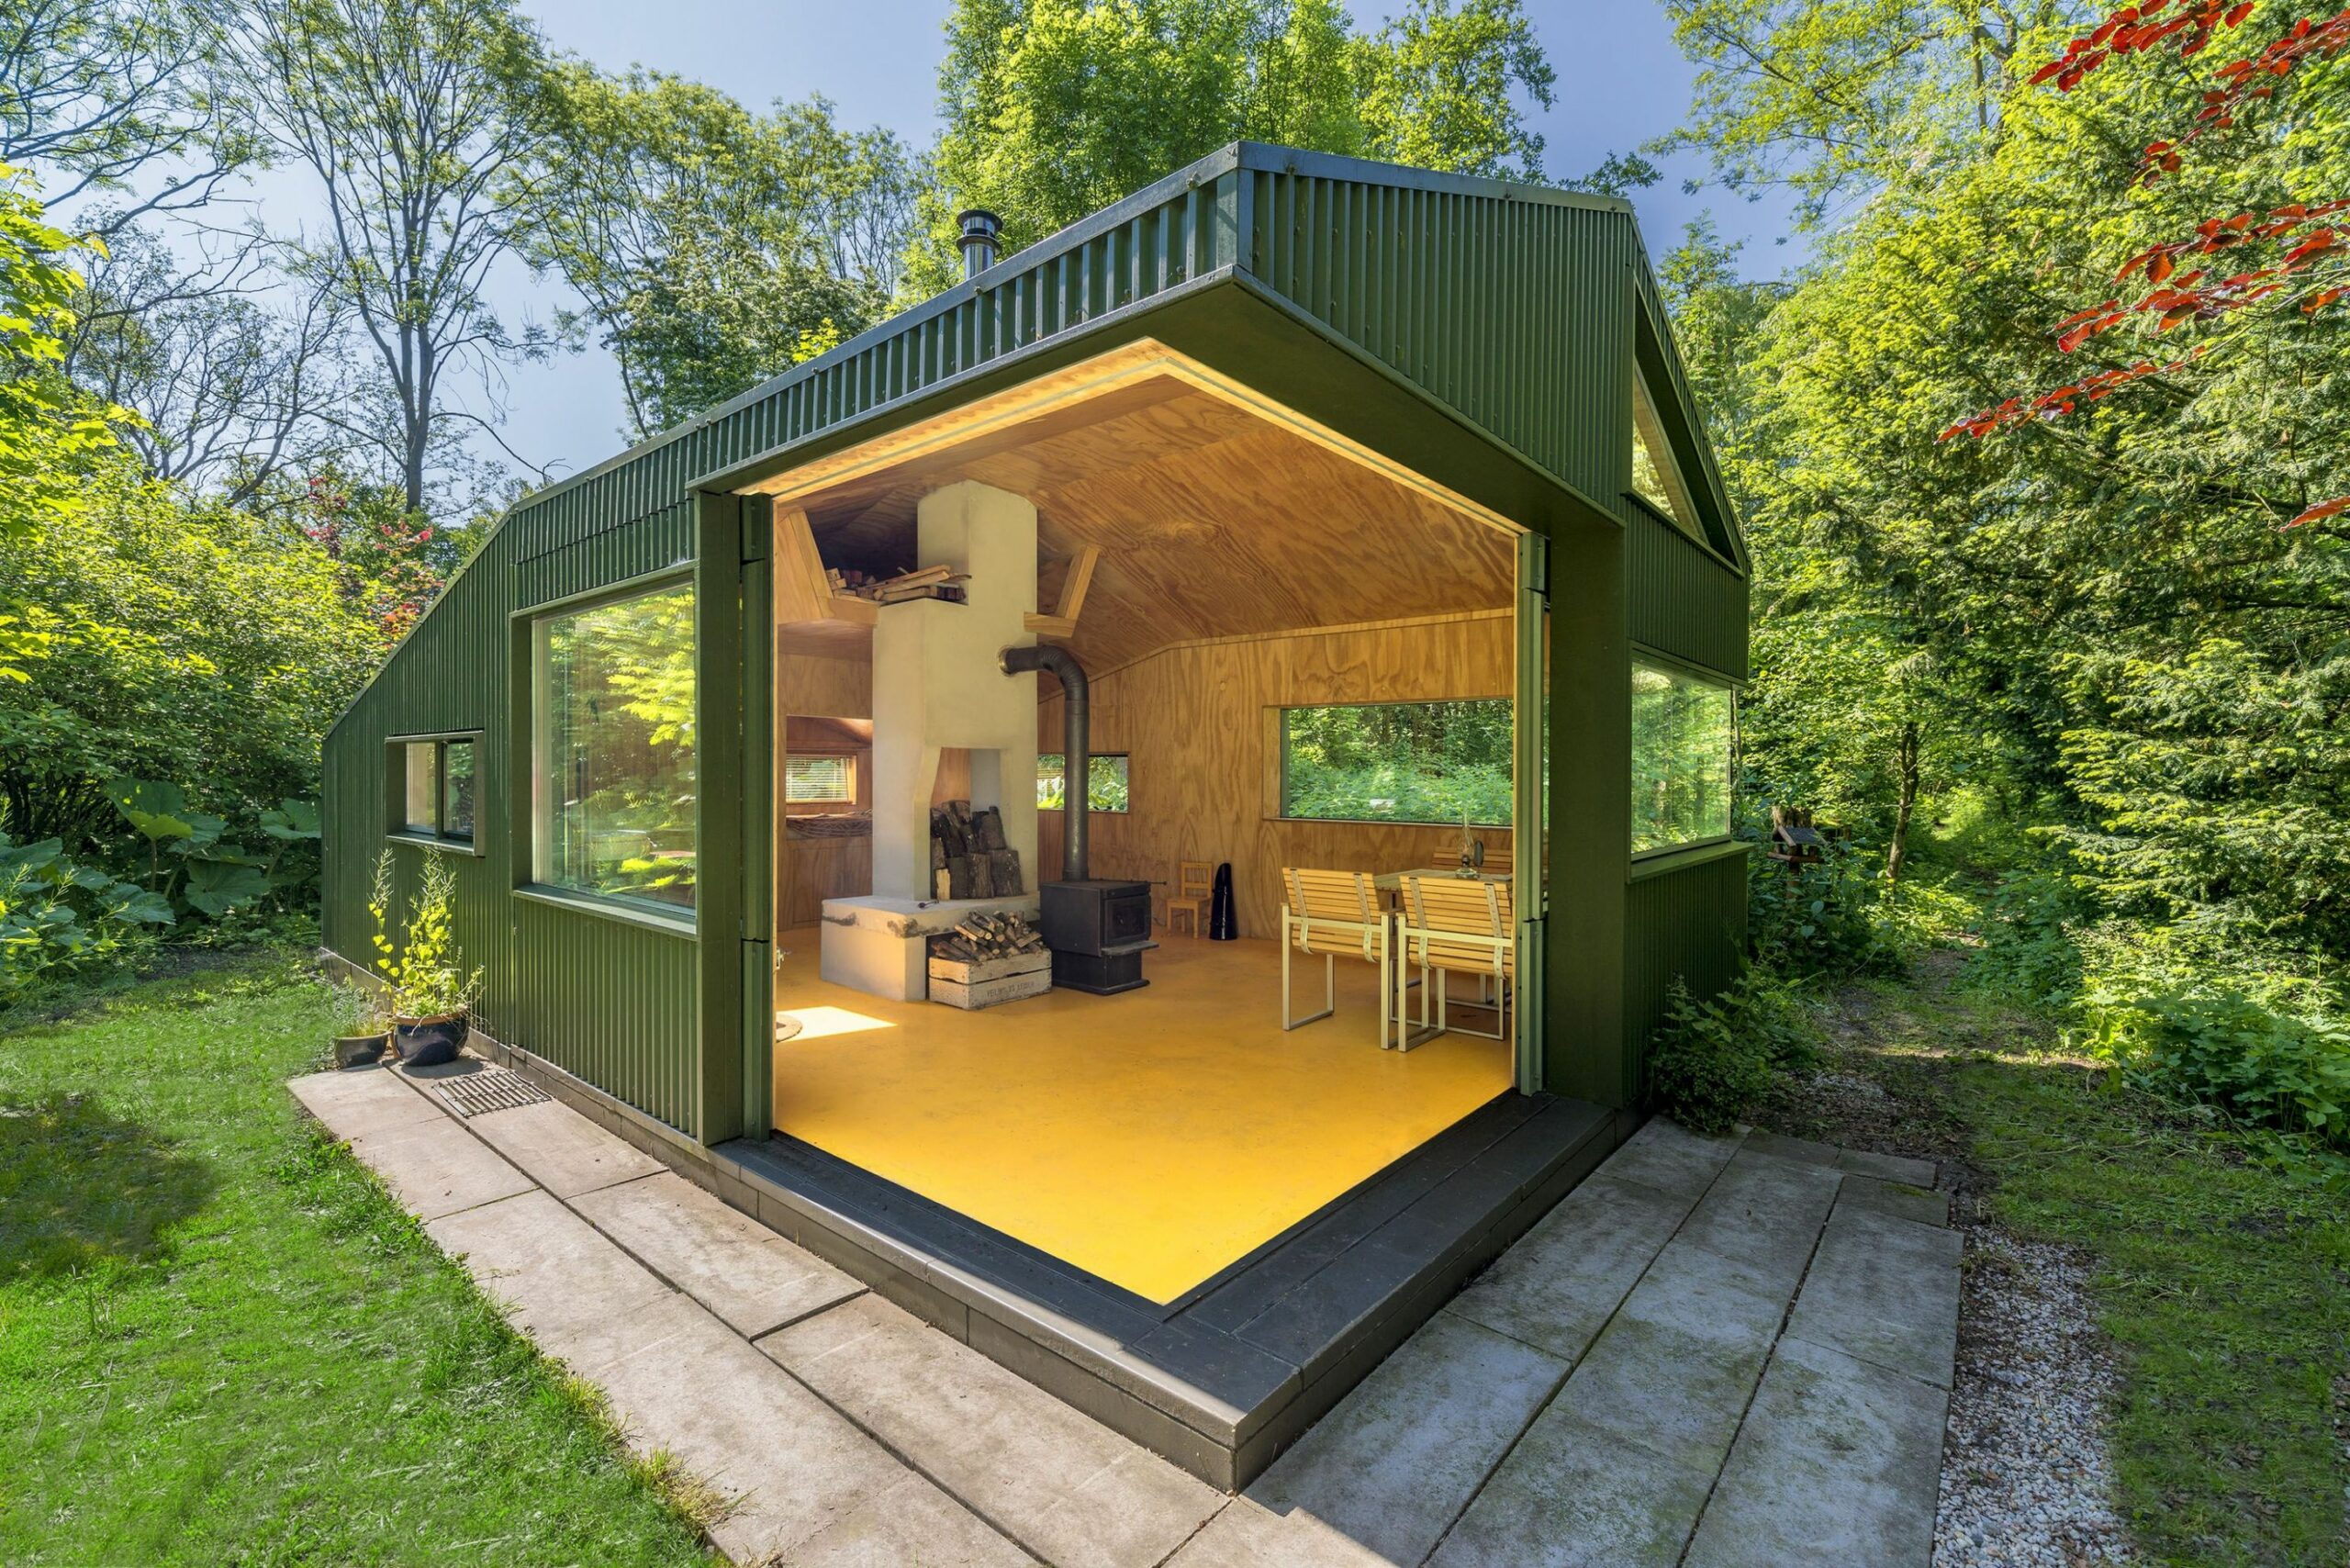 Thoreau's cabin Sited in the 8 acre Noorderpark in Utrecht, the ...